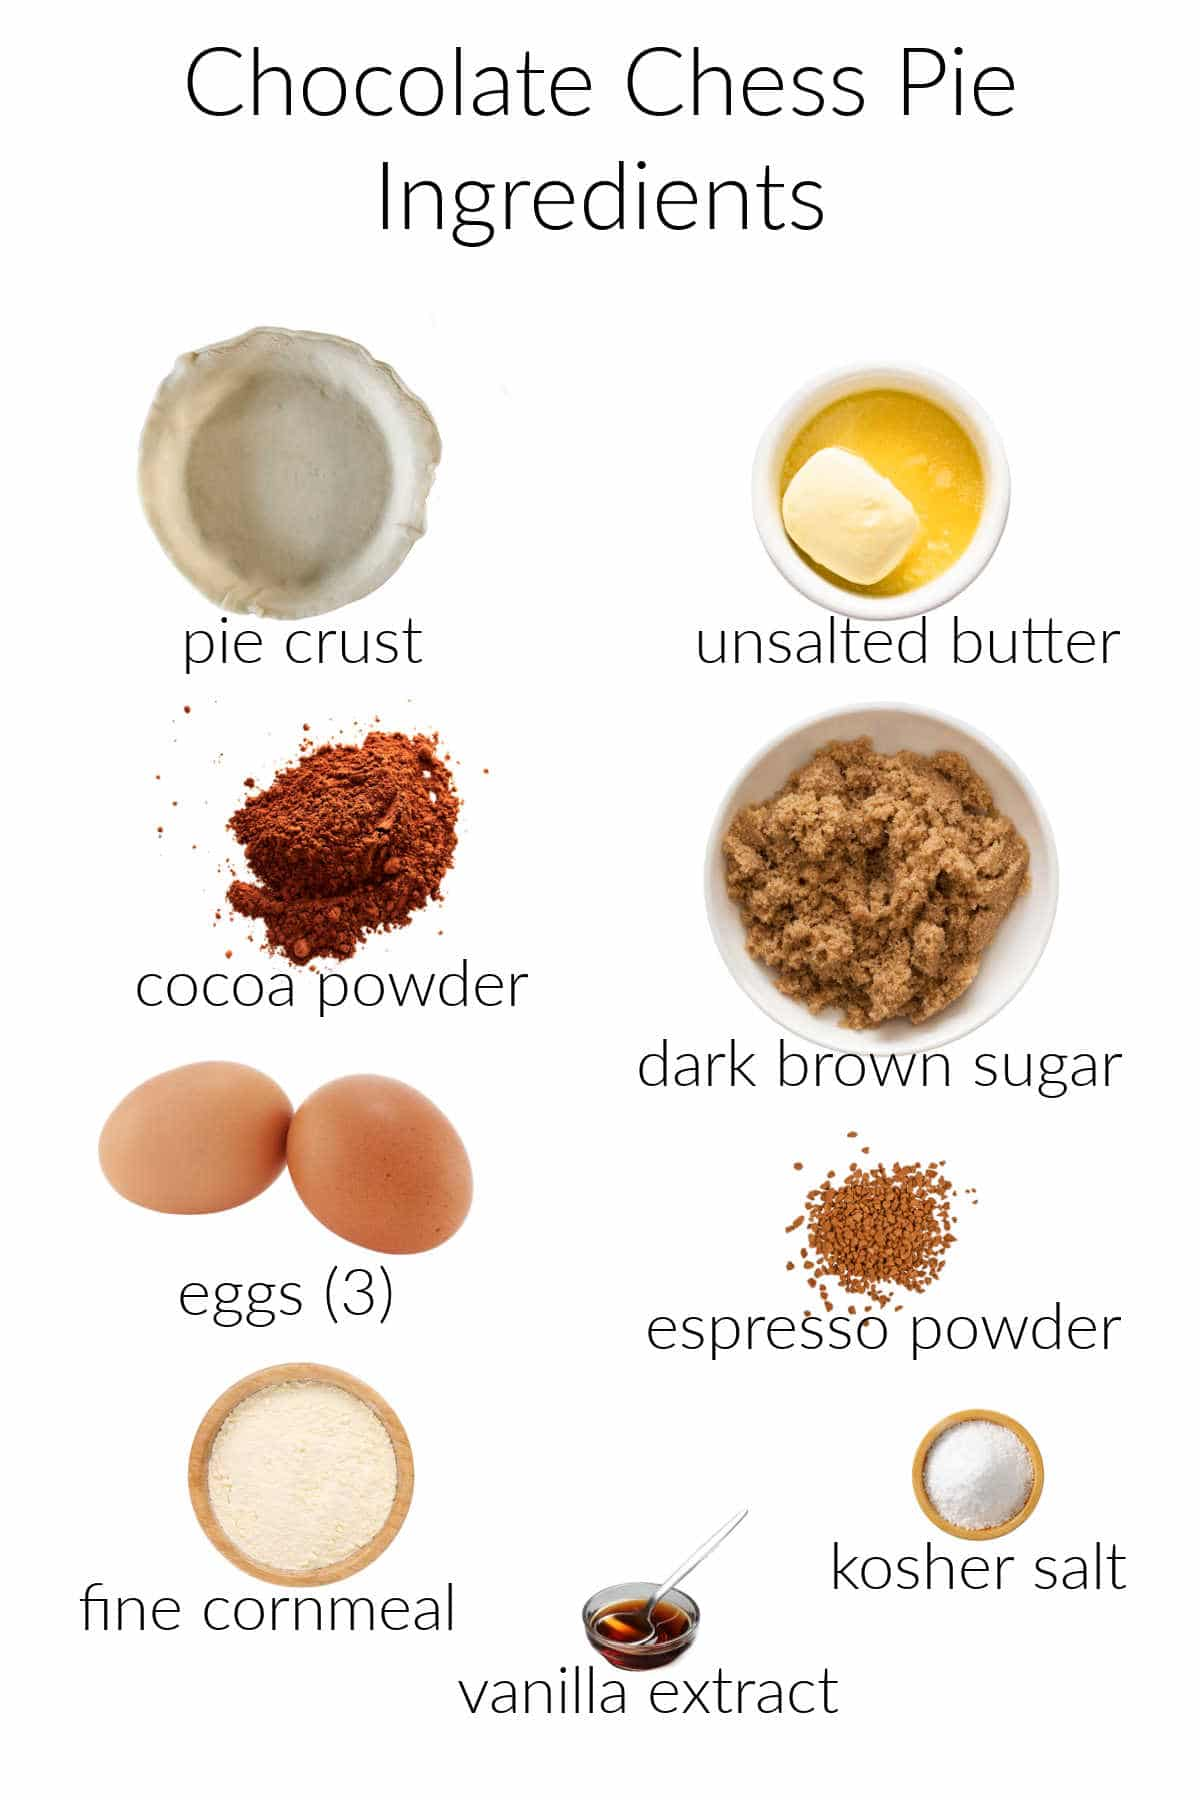 Collage of ingredients in chocolate chess pie.